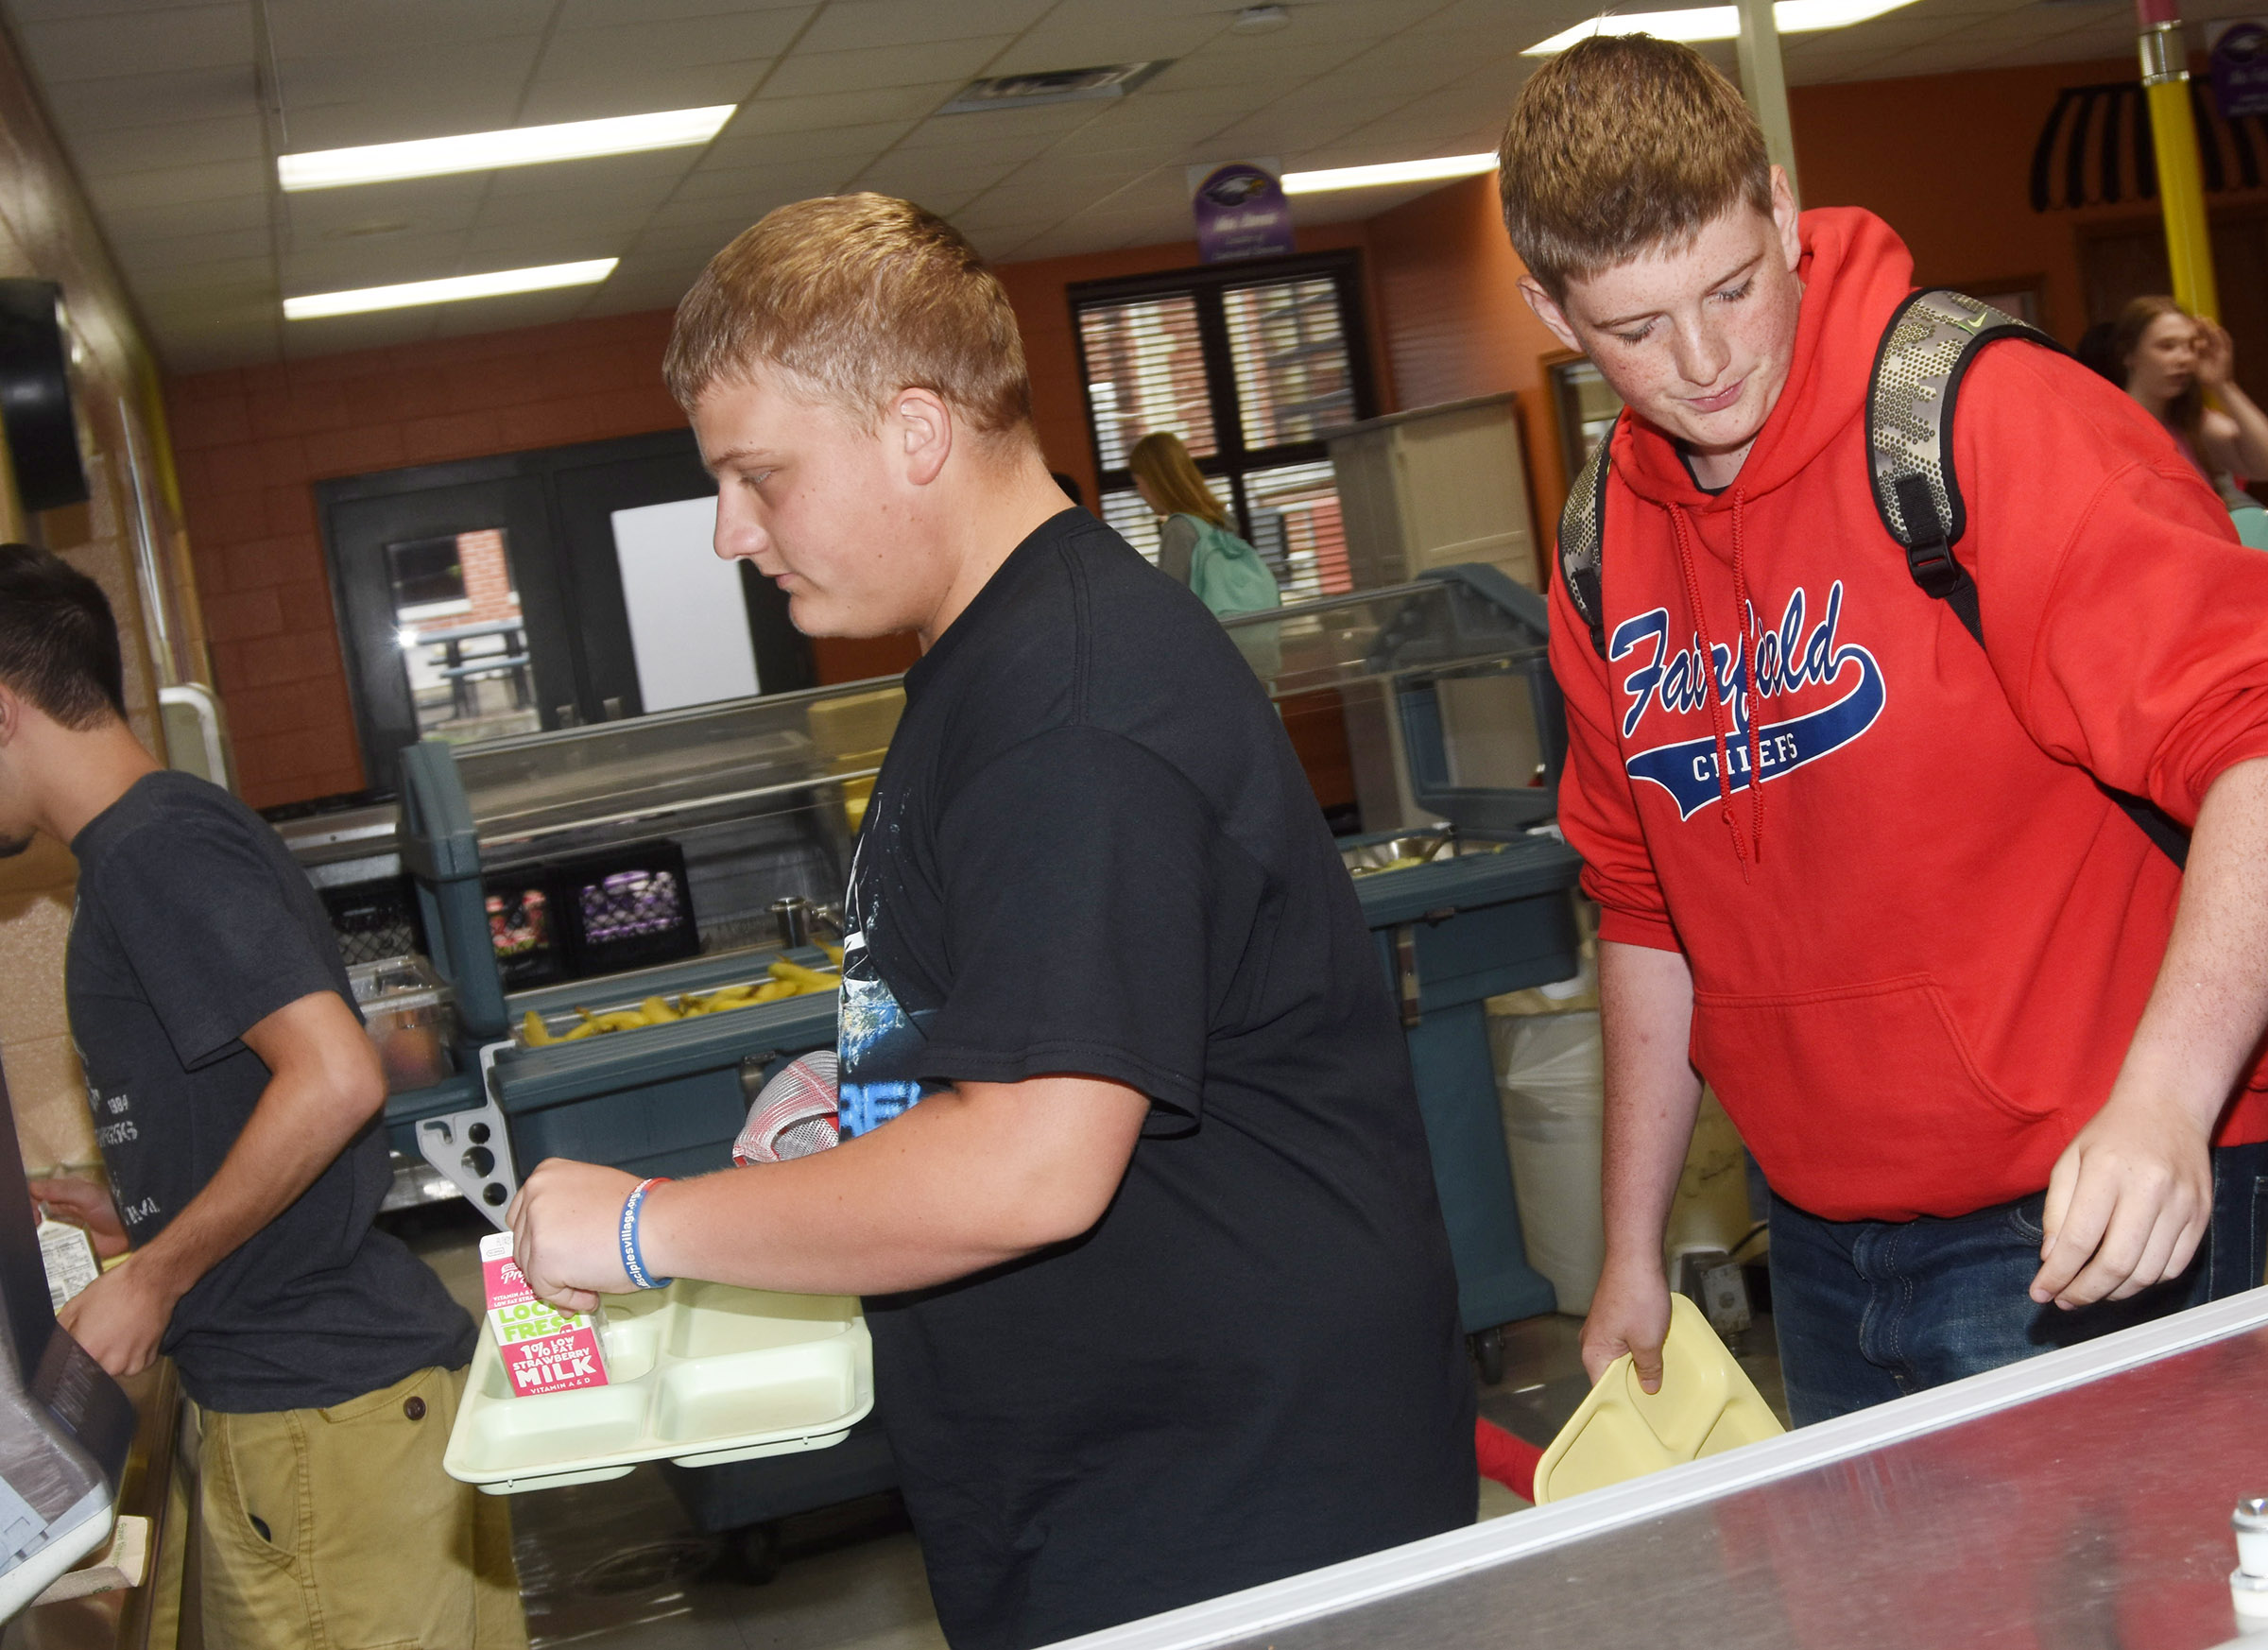 Campbellsville High School senior Quentin Skaggs gets a tray at lunch.